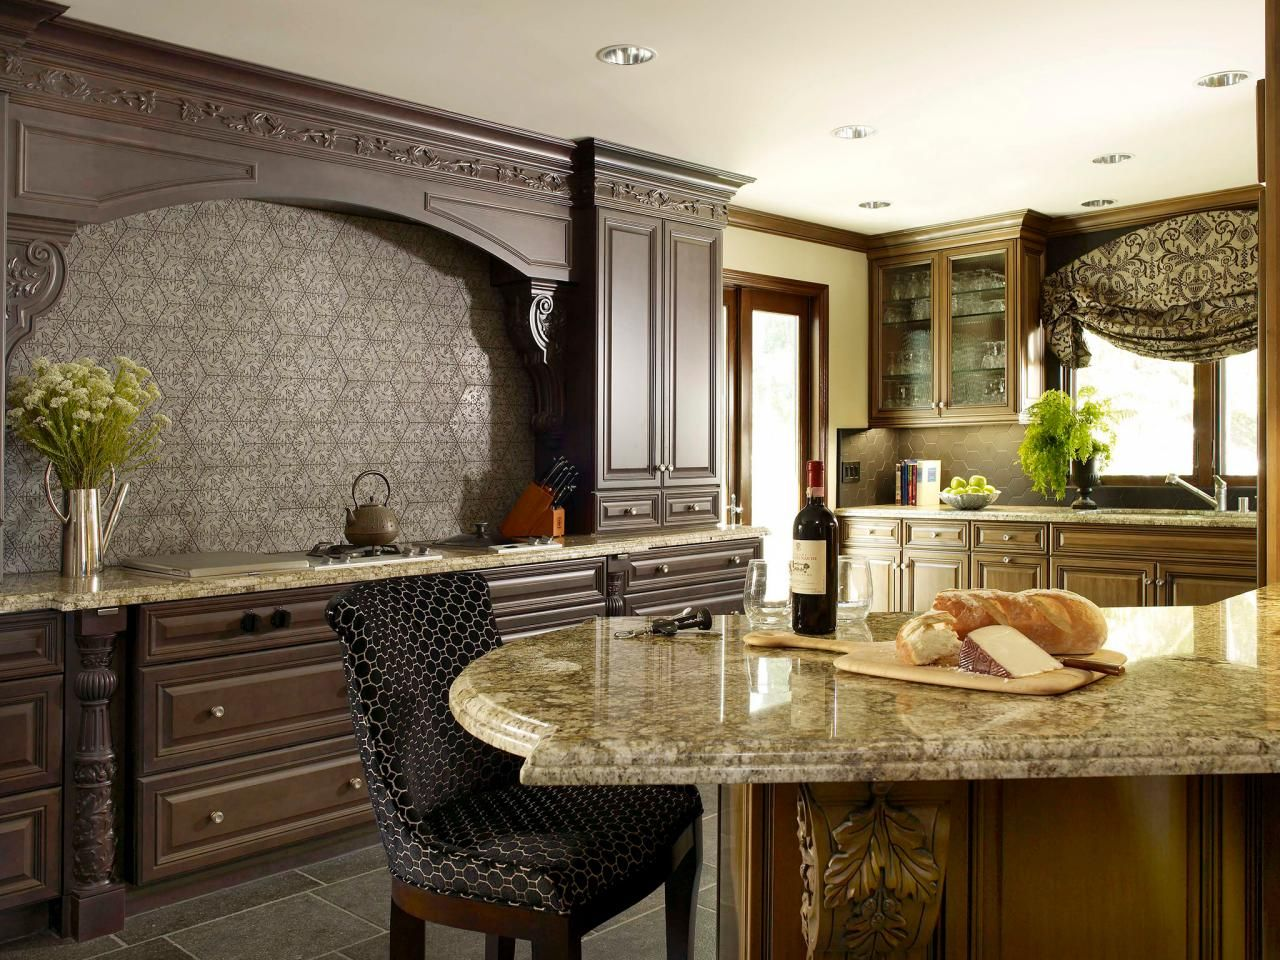 Best kitchen countertops pictures u ideas from kitchen project